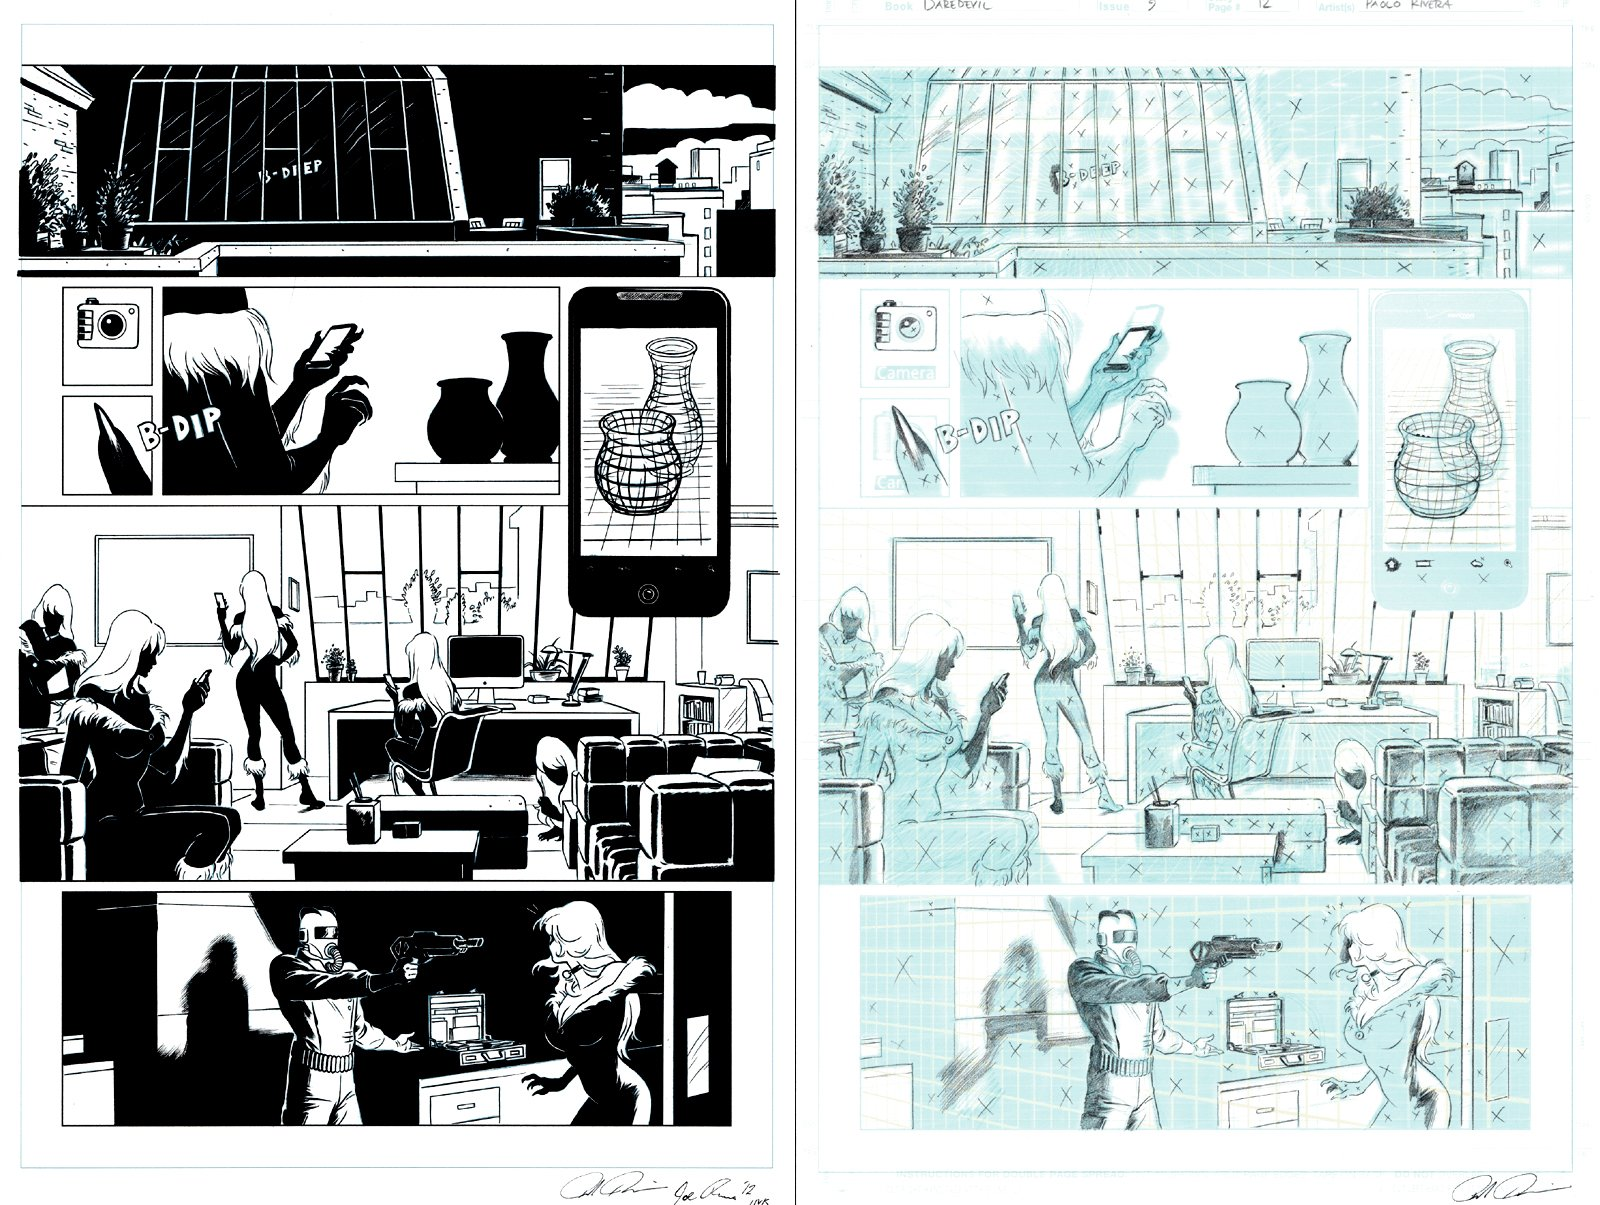 Daredevil #9 p 12 (Penciled & inked Pages Together, BLACK CAT THROUGHOUT!) 2012